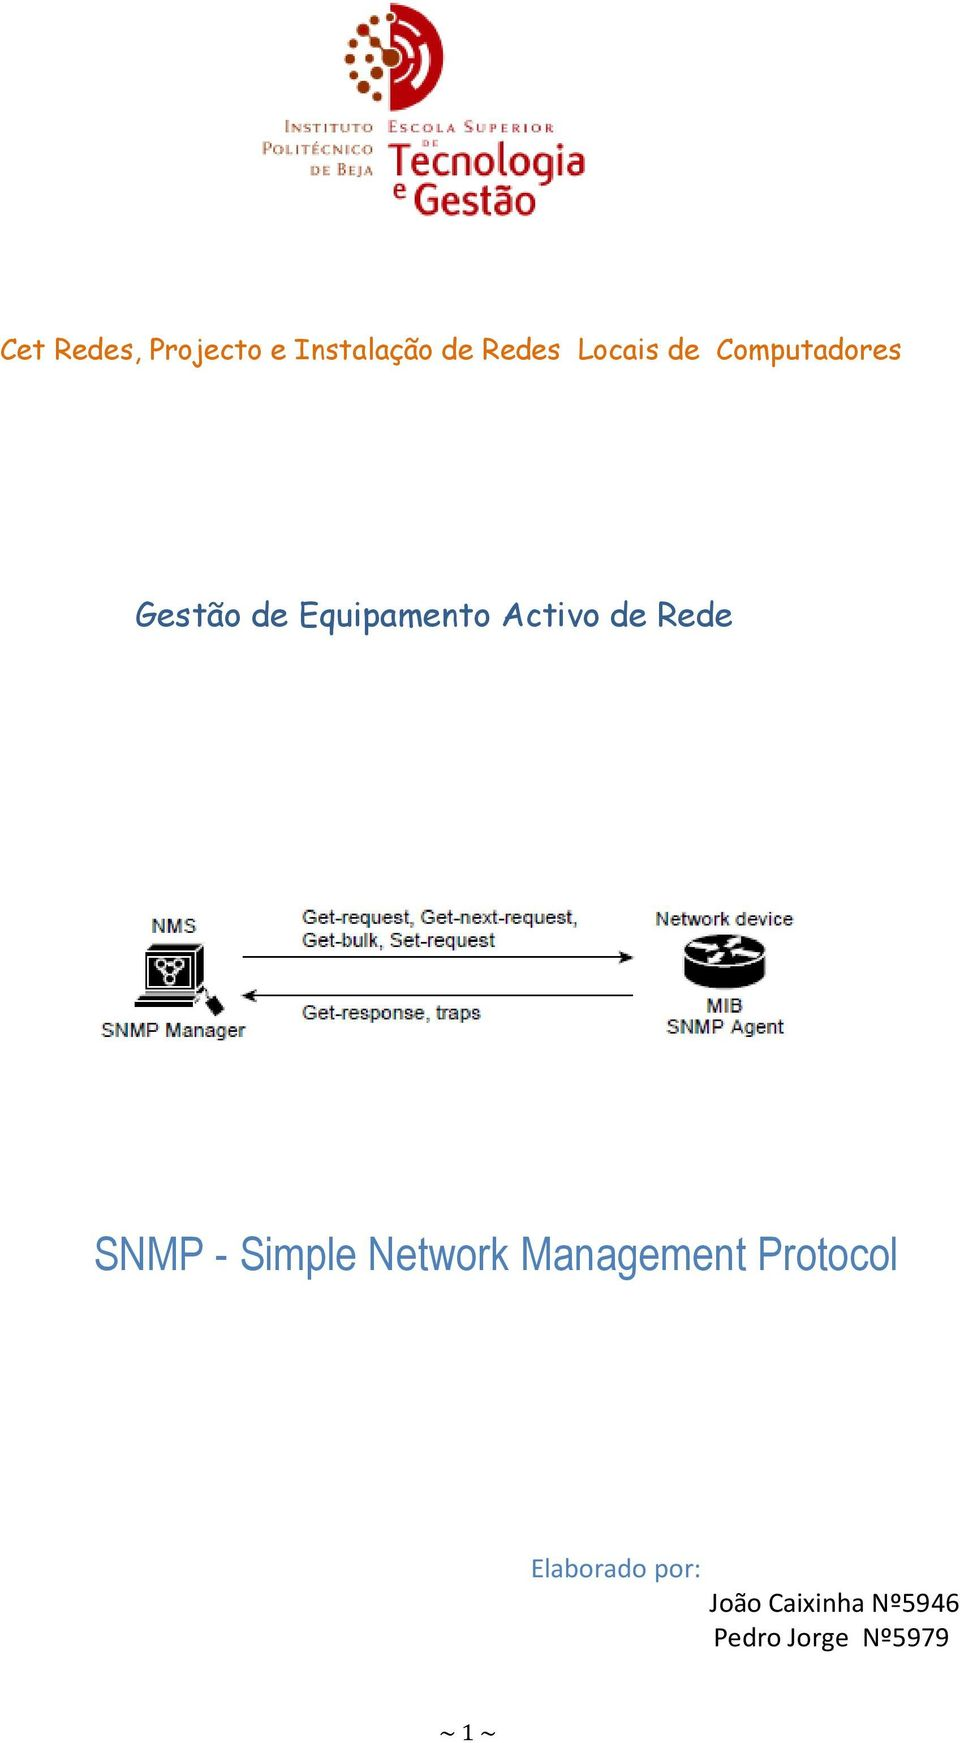 Rede SNMP - Simple Network Management Protocol